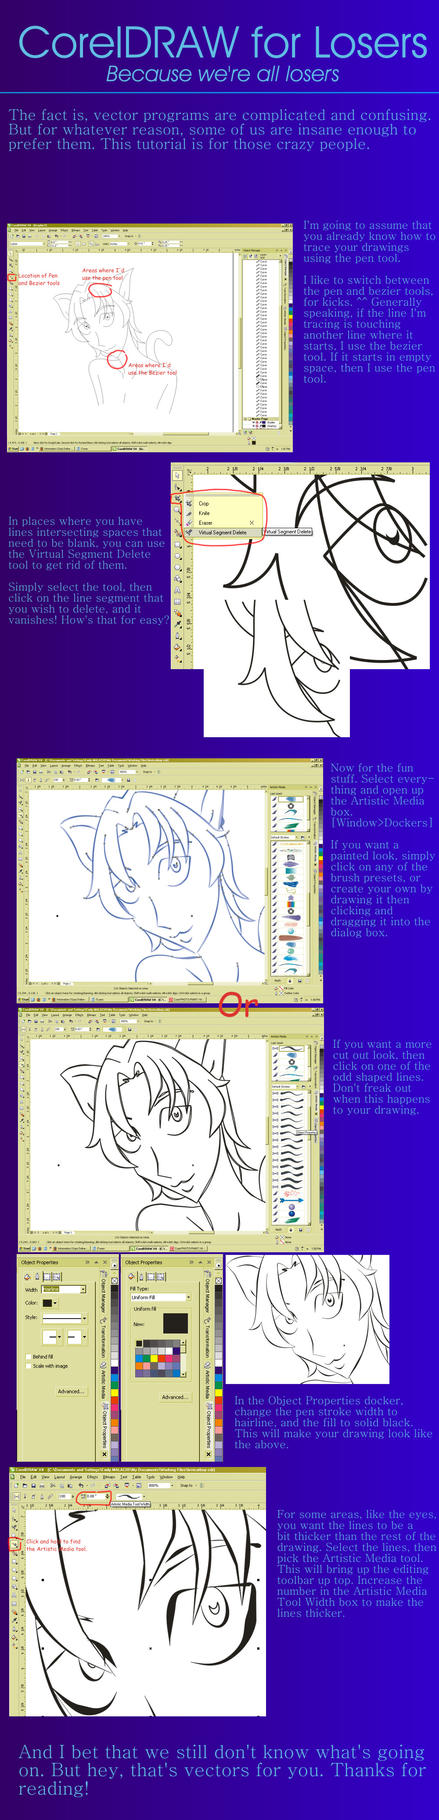 Line Art Coreldraw Tutorial : Coreldraw lineart tutorial by caroldreamer on deviantart